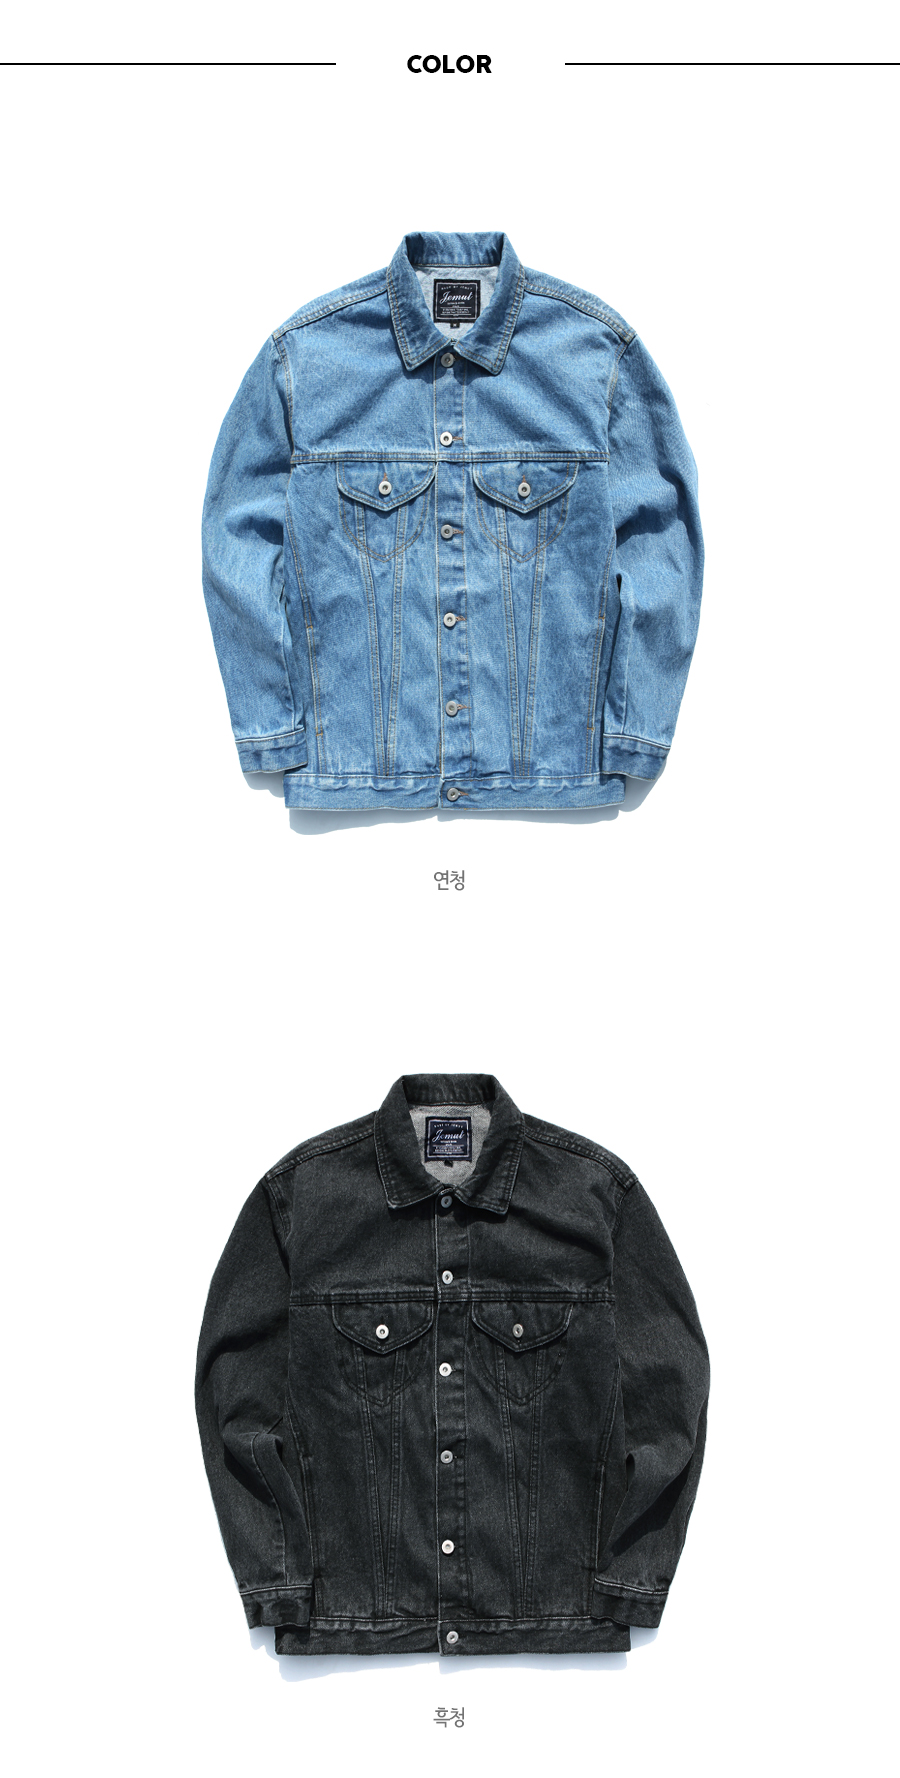 20181126_loose_denim_jacket_color_yh.jpg